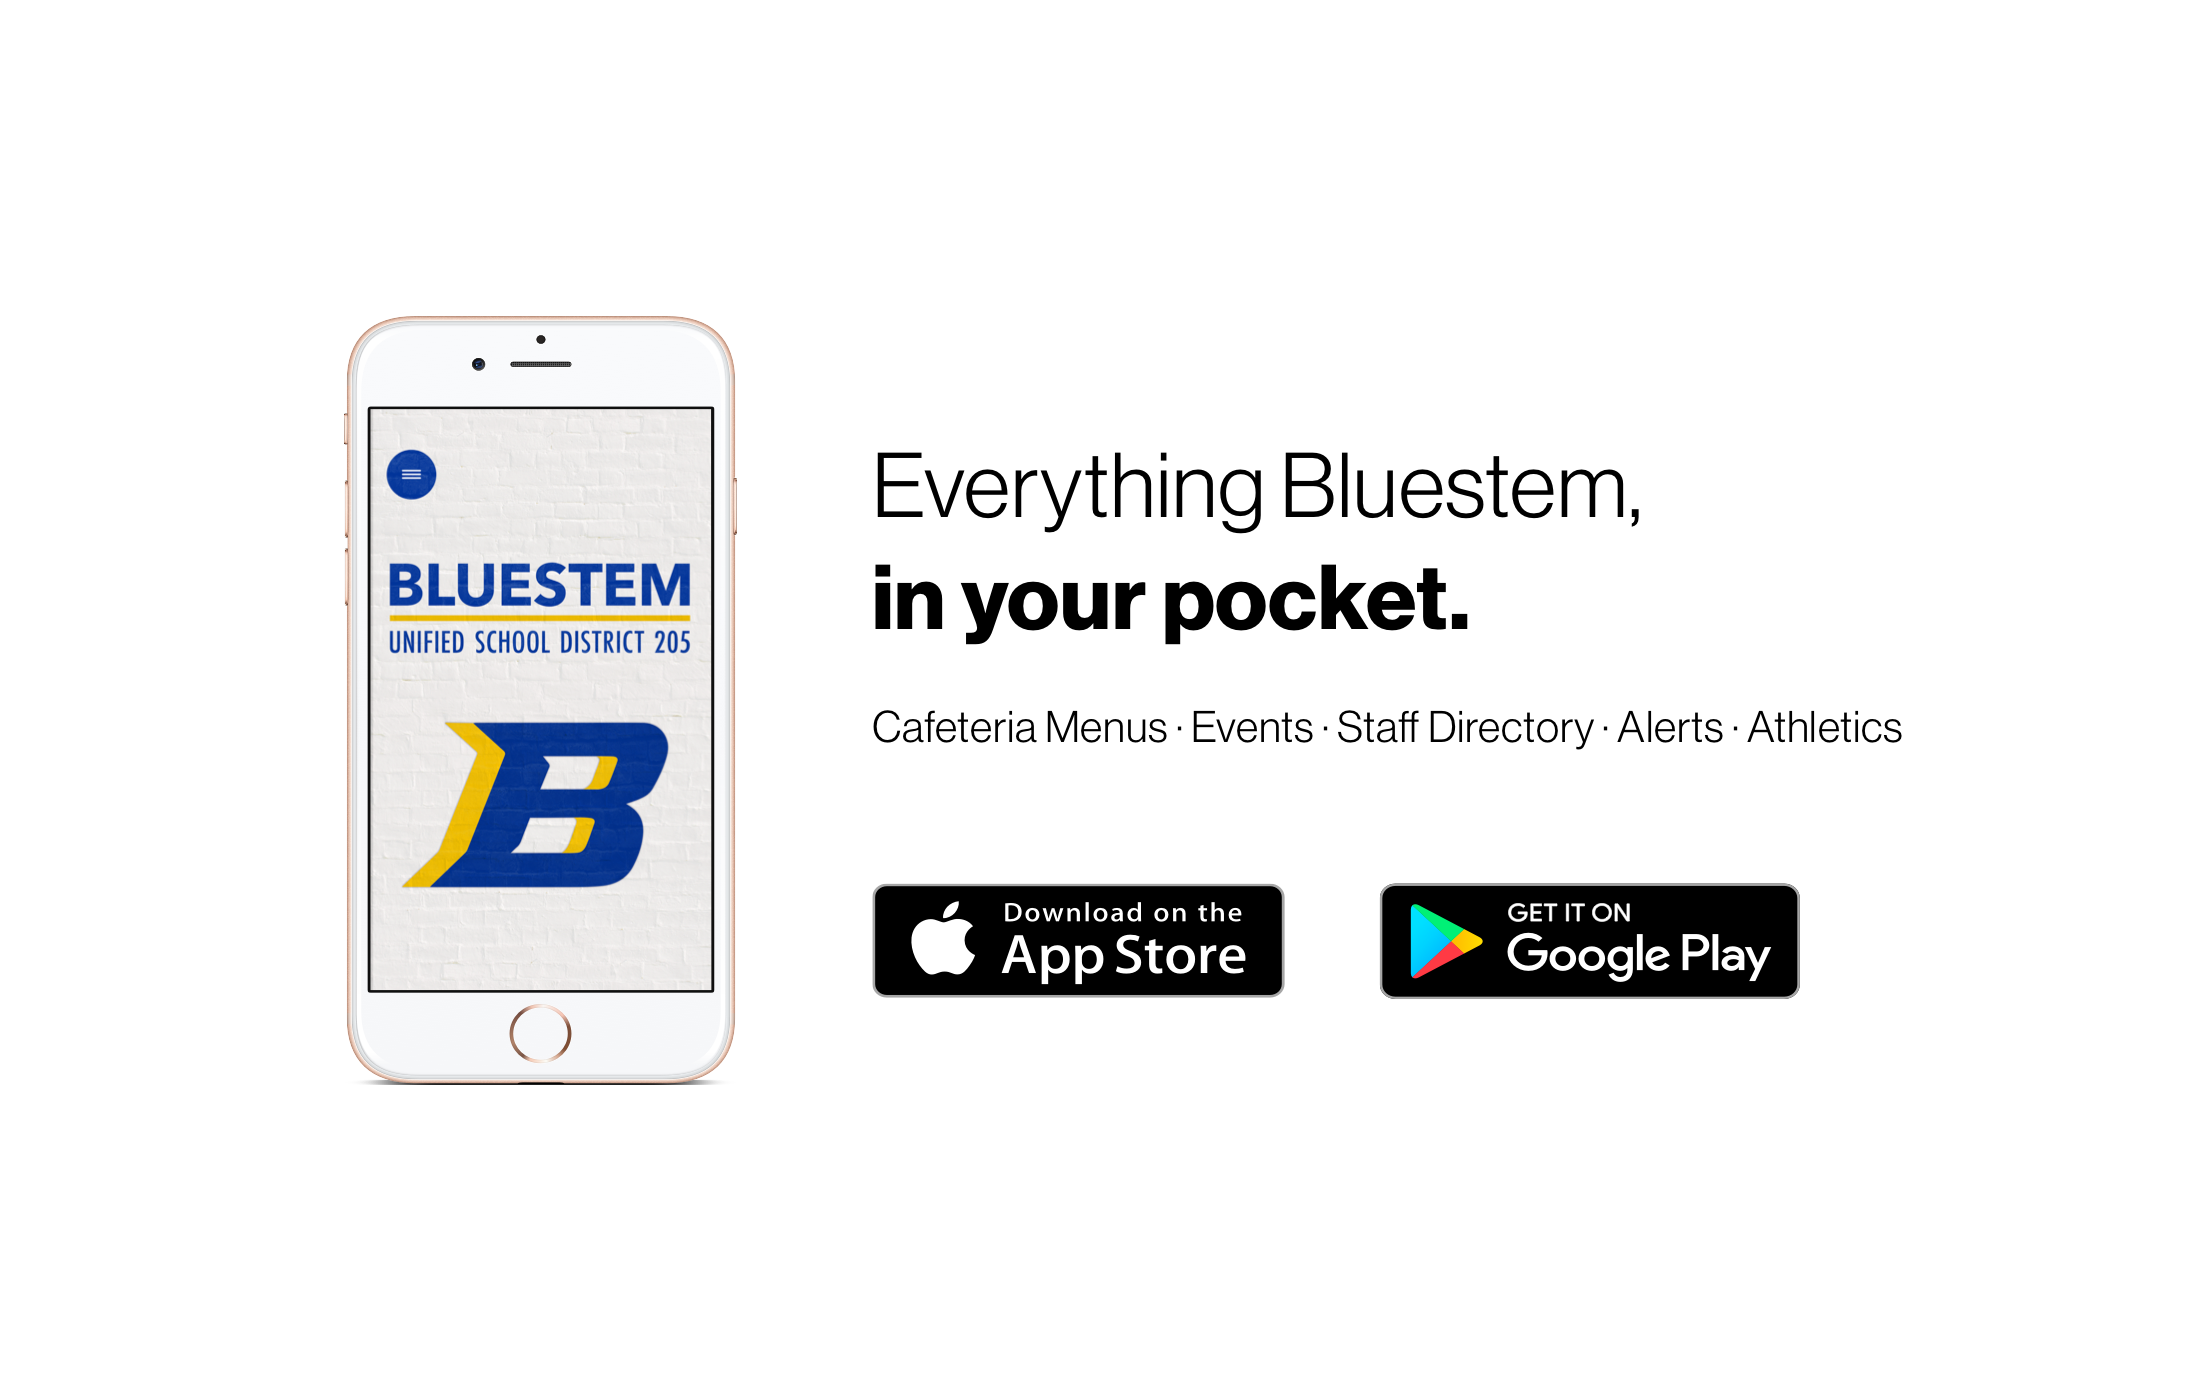 Everything Bluestem, in your pocket. Cafeteria Menus, Events, Staff Directory, Alerts, Athletics